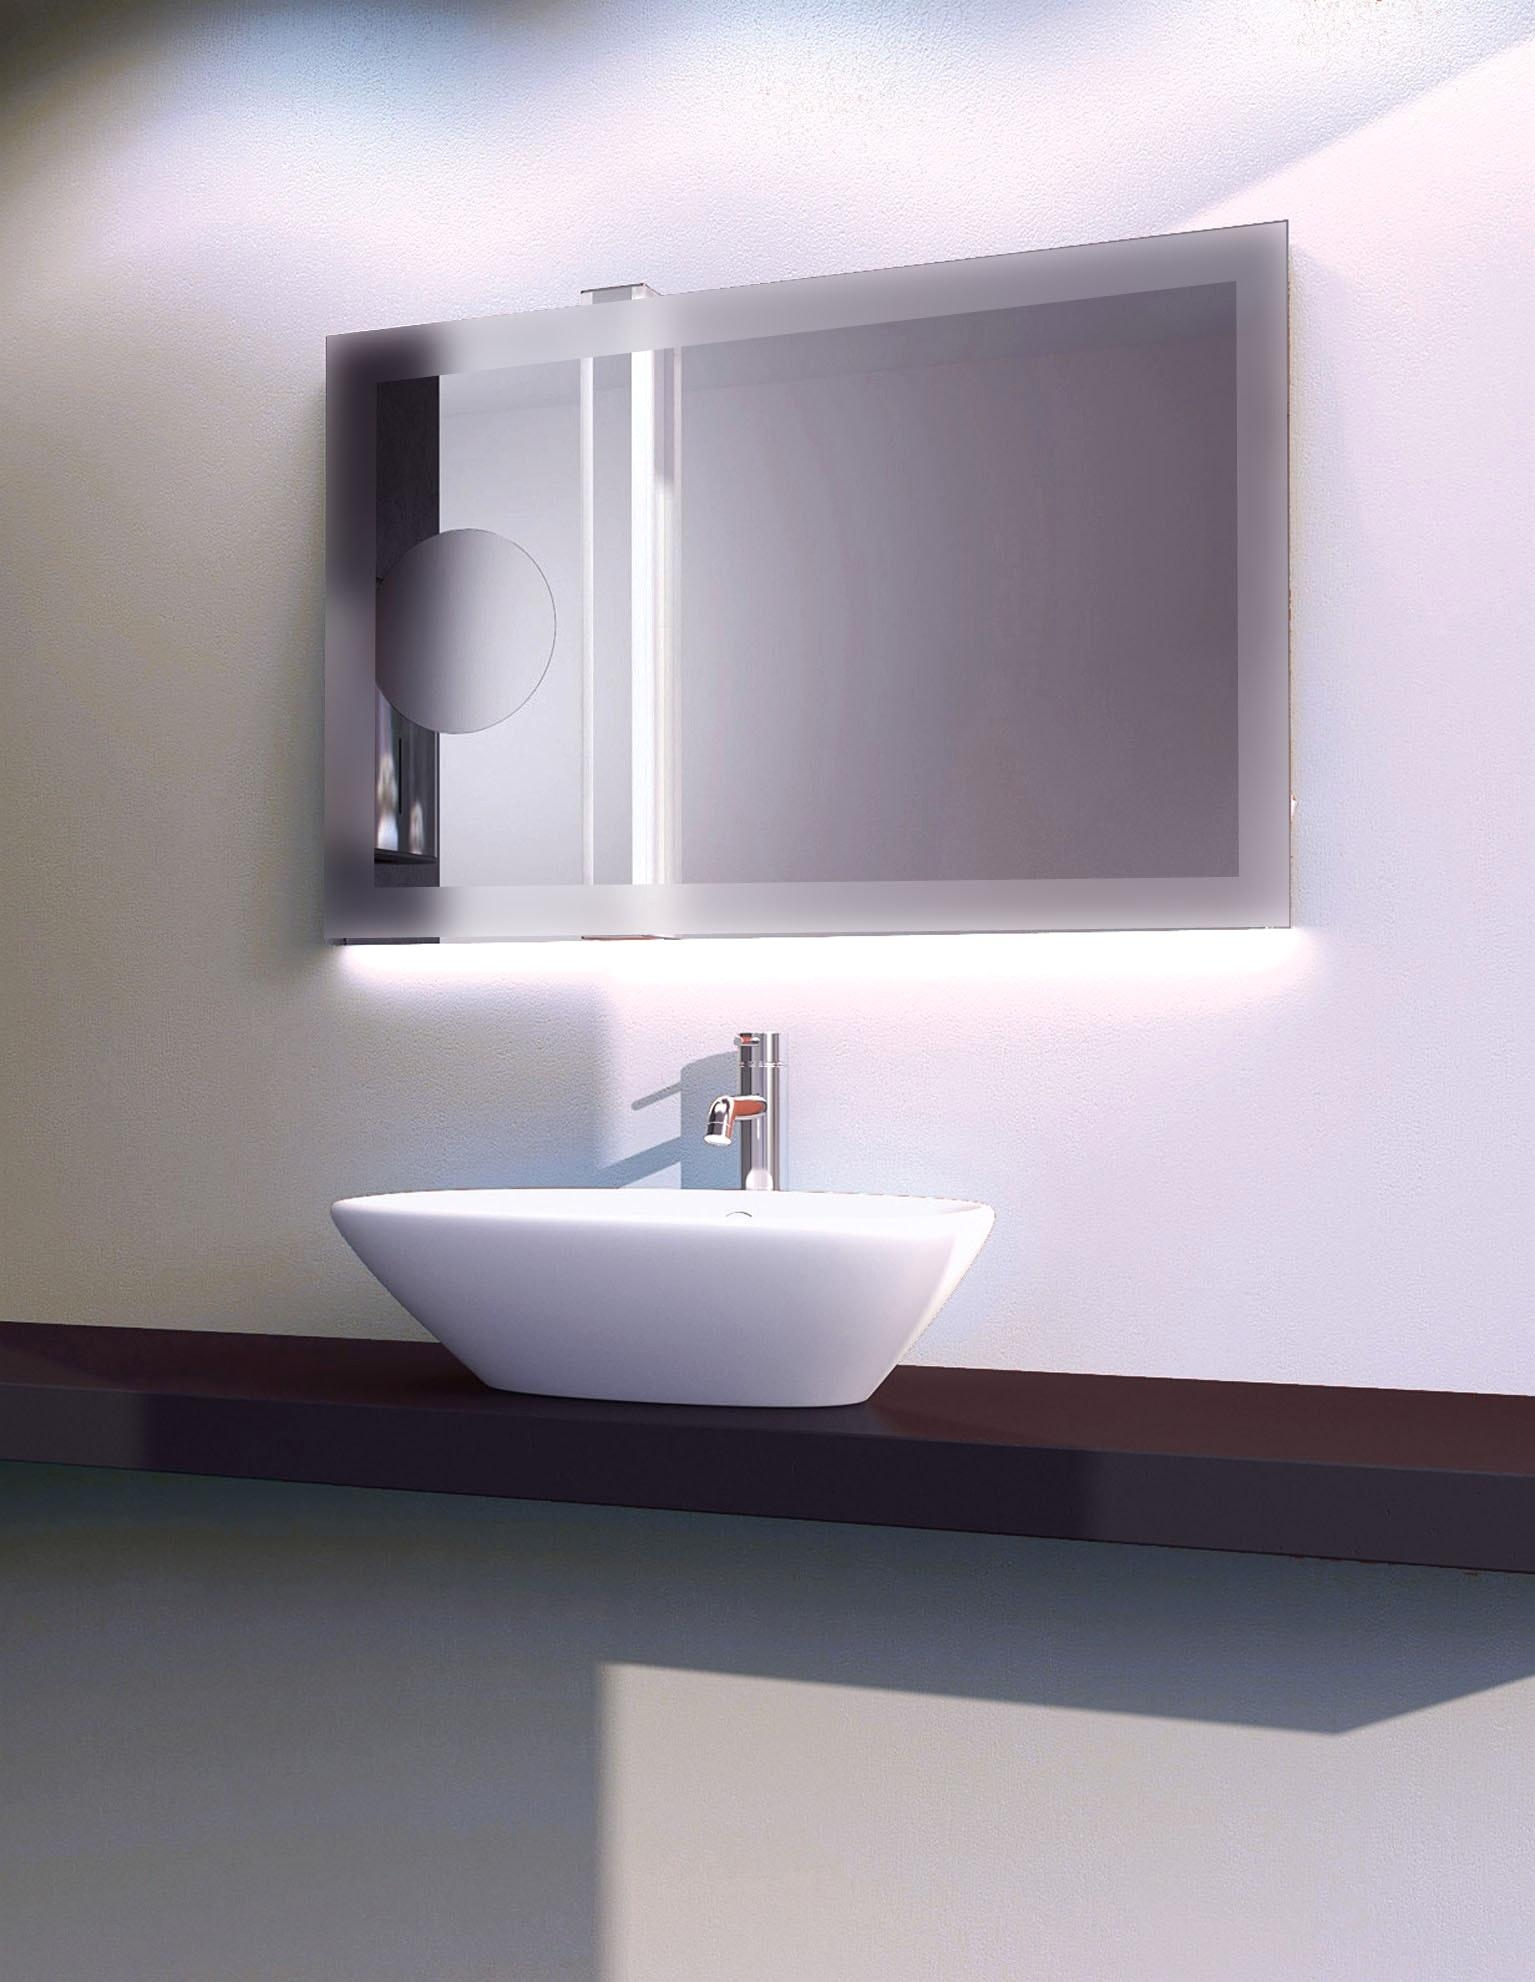 Bathroom Mirror With Led Lights And Mirrors Led Illuminated Light With Regard To Led Lit Bathroom Mirrors (Image 13 of 20)